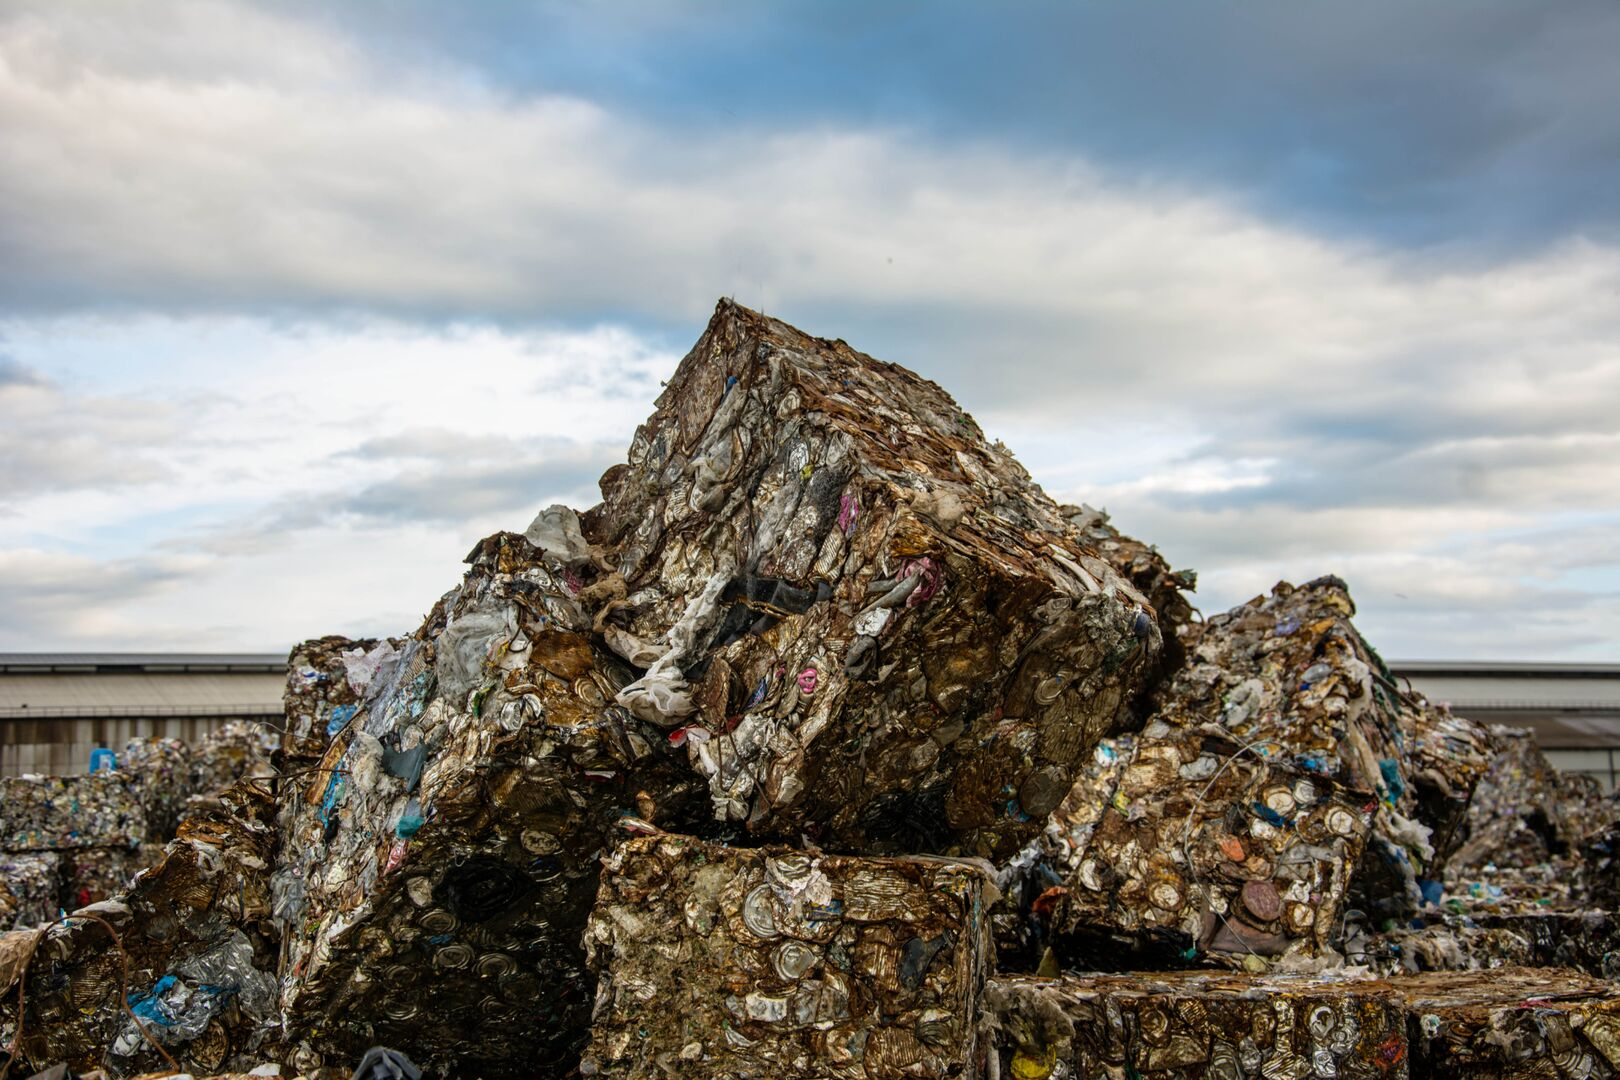 Steel remains the most recycled primary packaging material in Europe